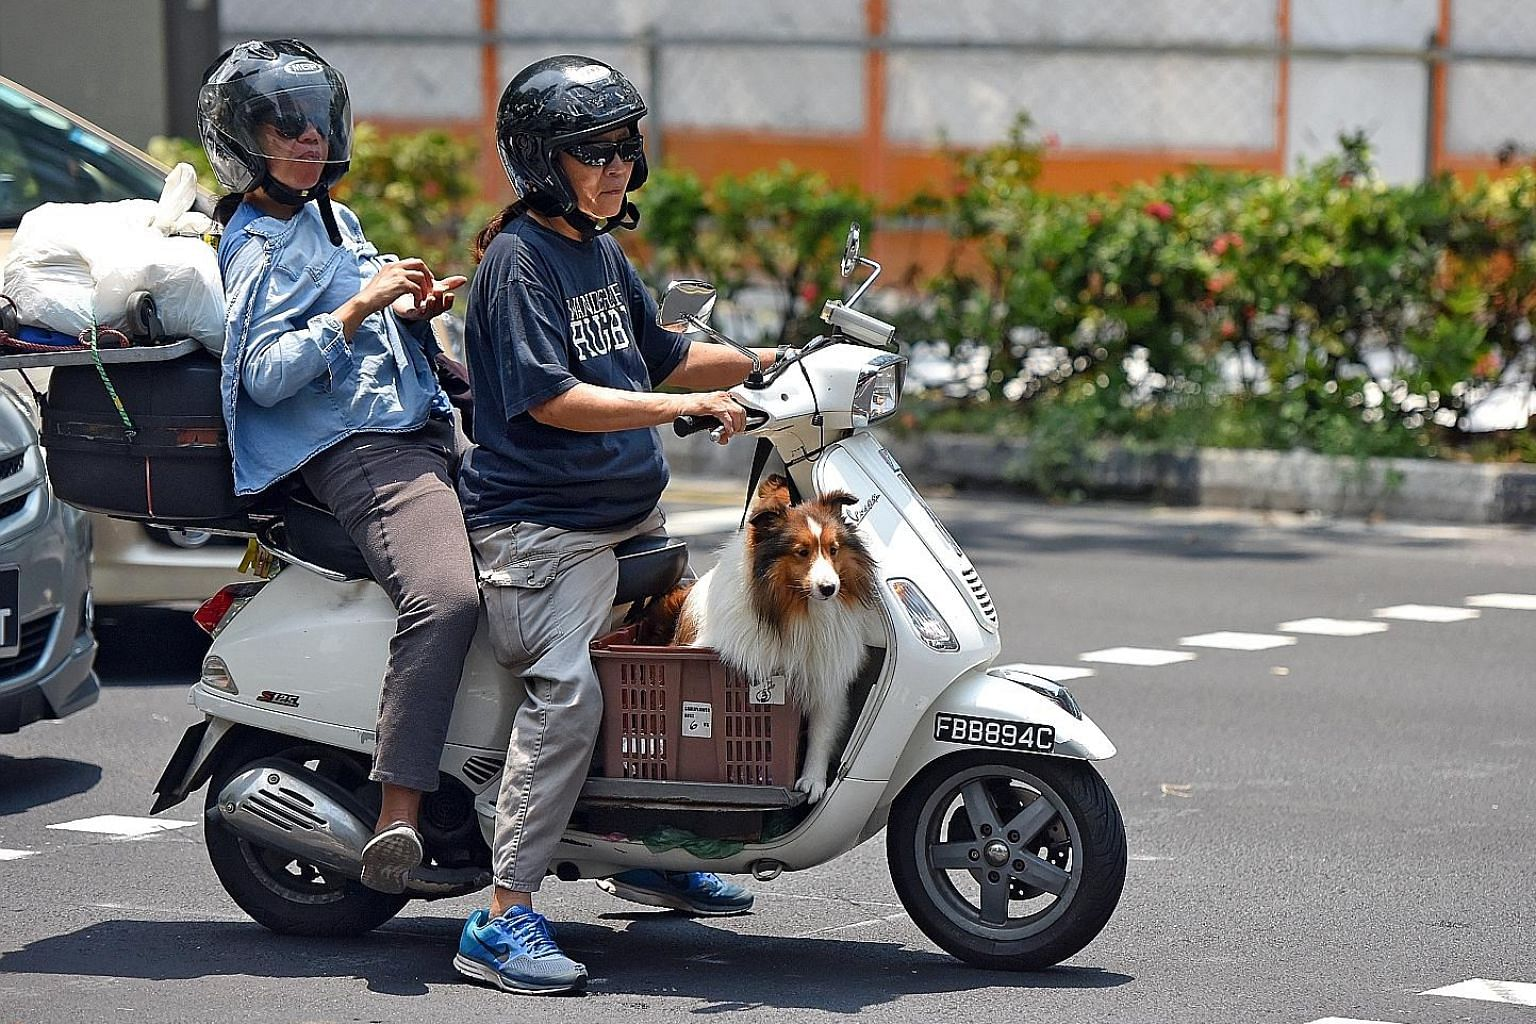 The record-high COE for bikes was due partly to buyers downgrading to smaller models after heftier taxes were imposed on bigger motorcycles in February, said the Singapore Motorcycle Trade Association's Mr Norman Lee.